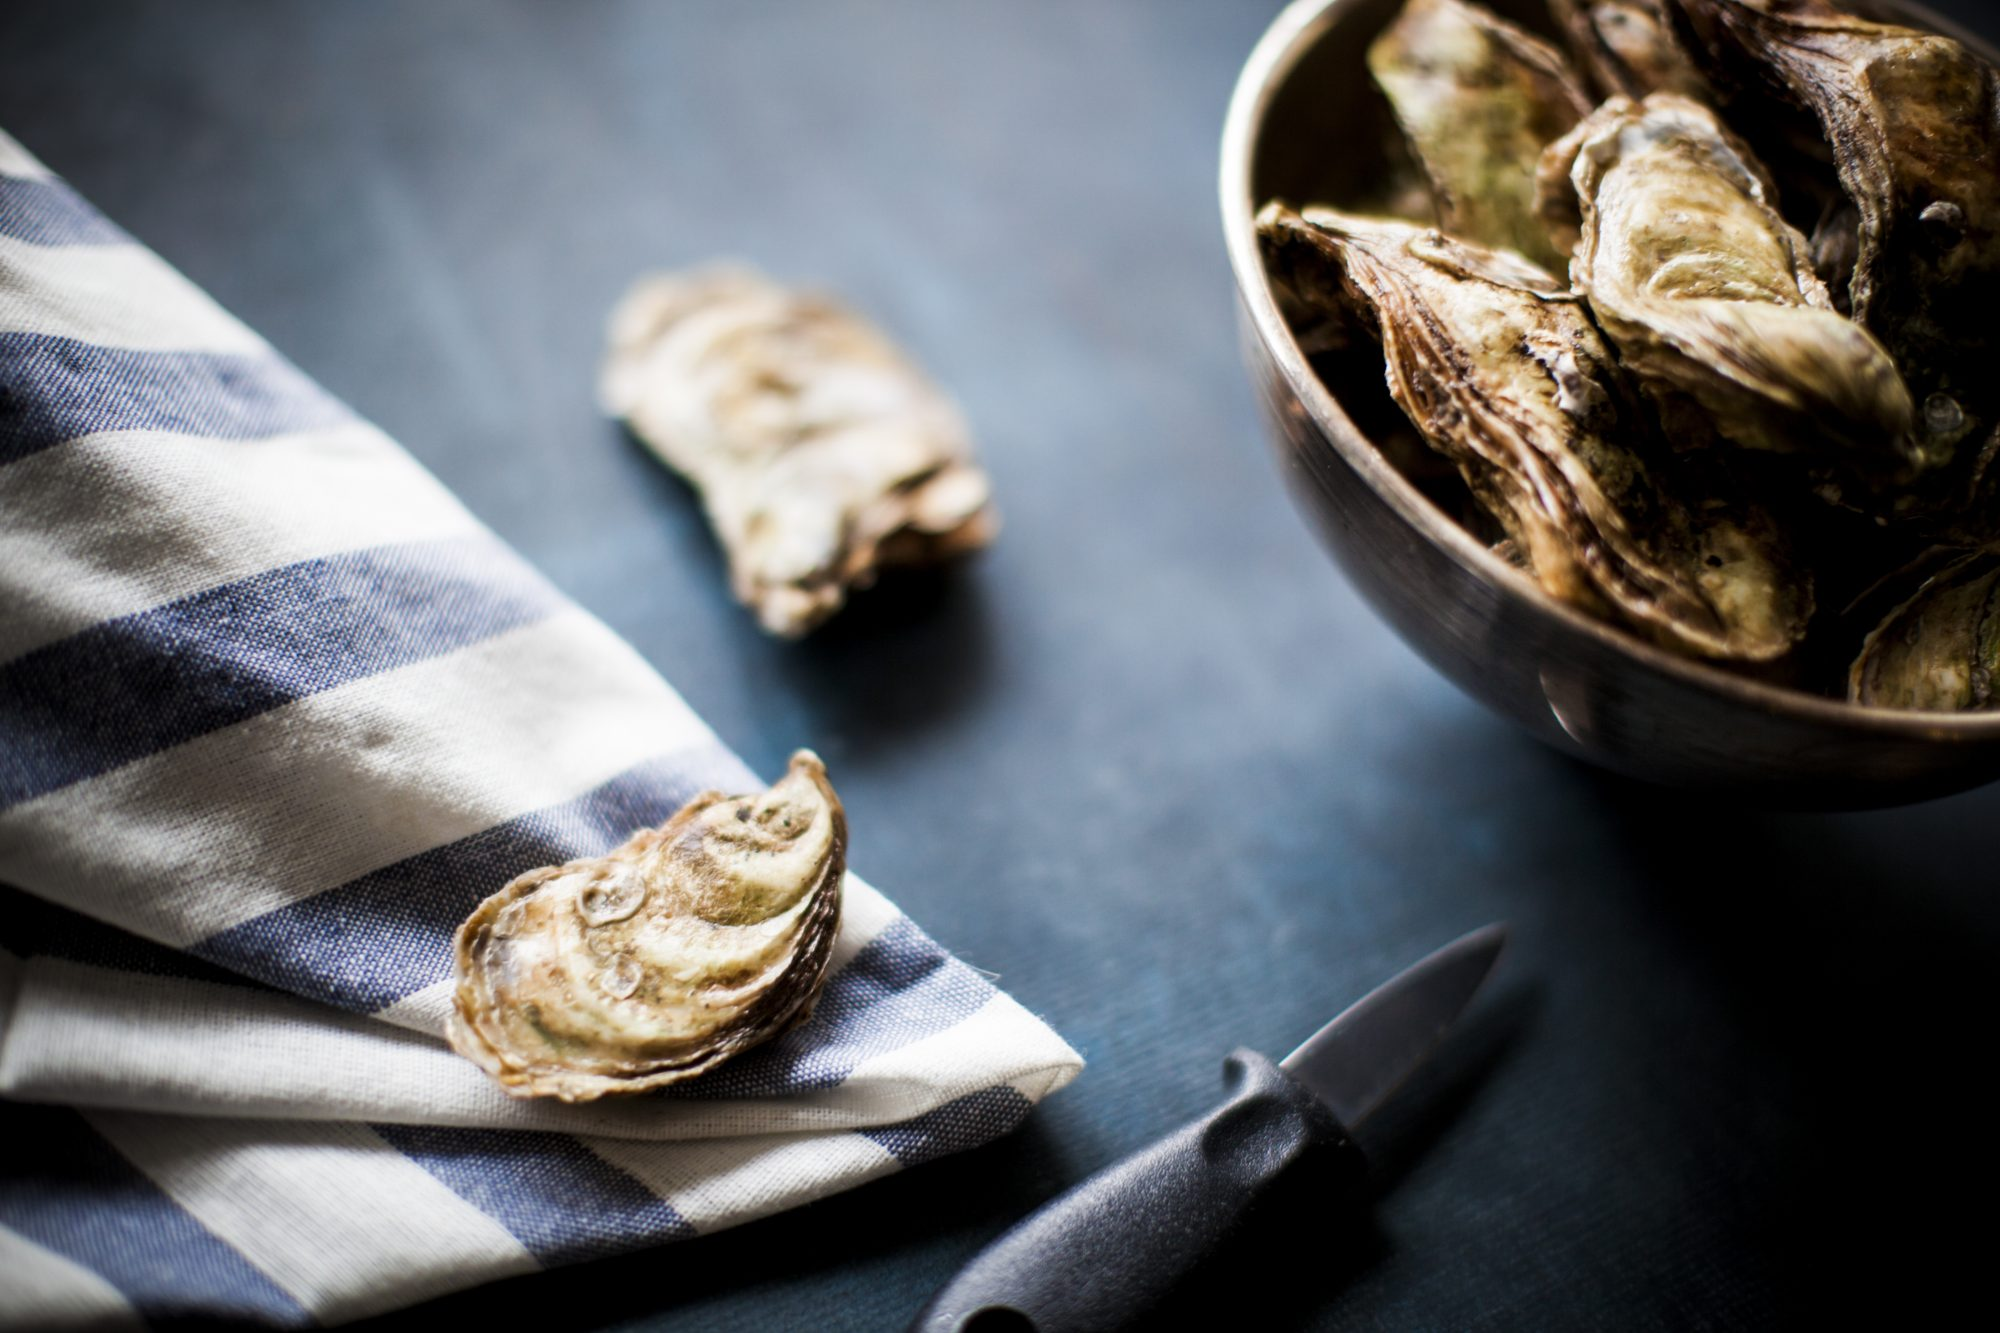 How to Shuck Oysters at Home, According to a Professional Shucker